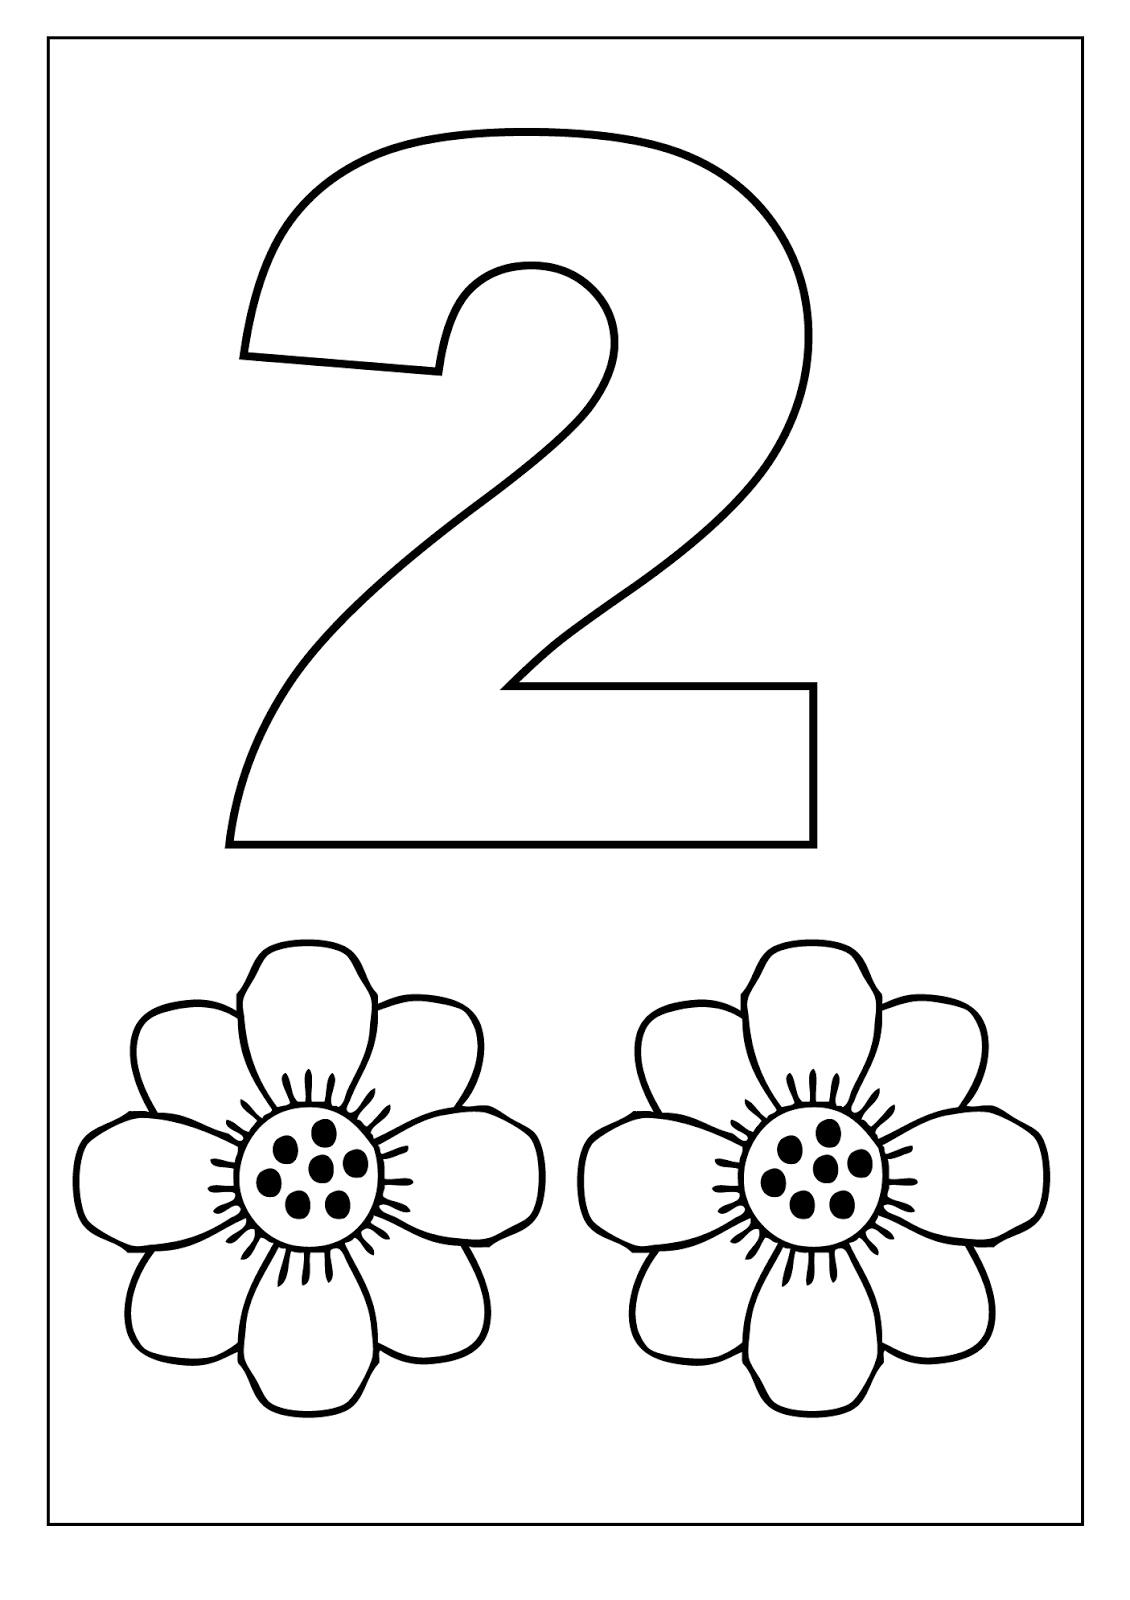 Trace Number 2 Worksheets Activity